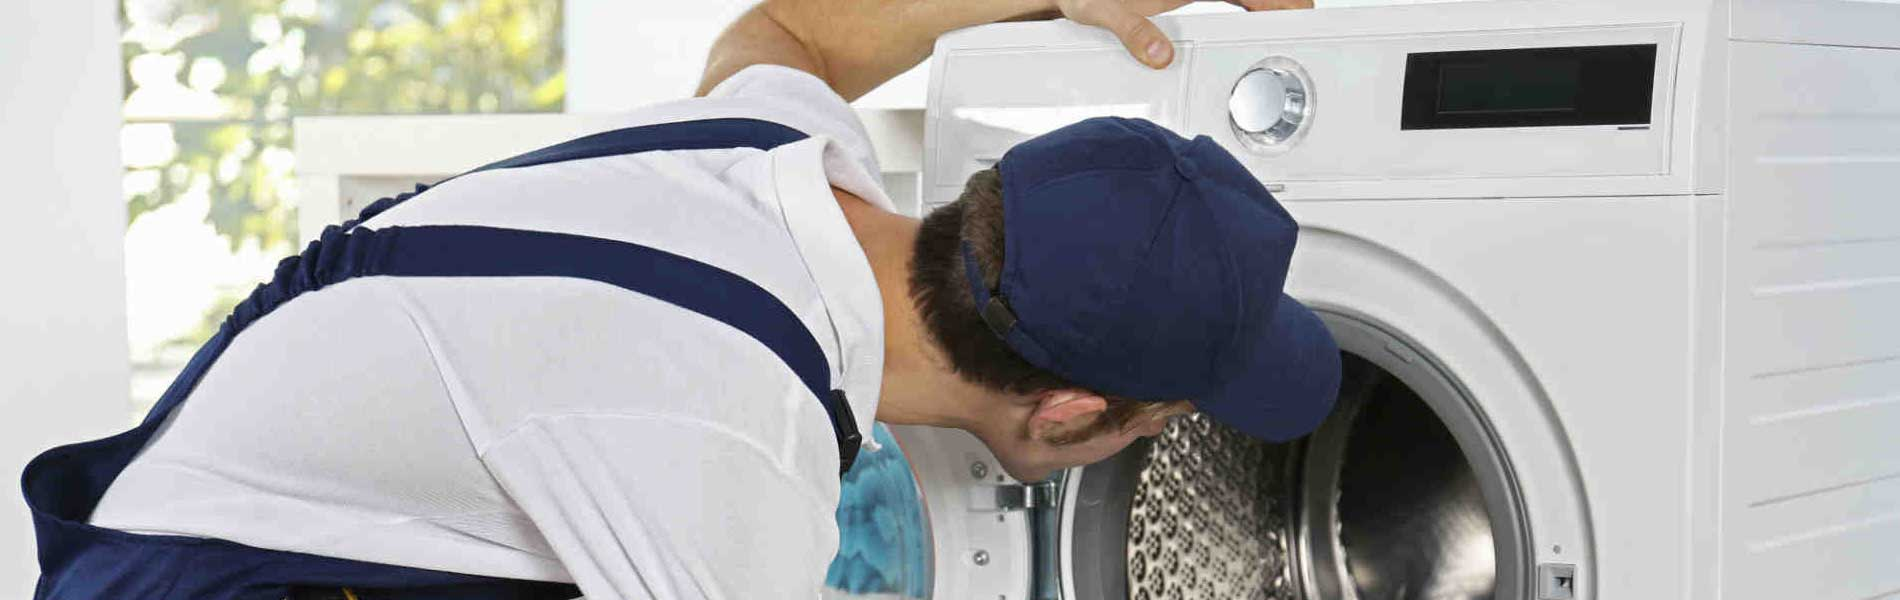 Godrej Washing Machine Repair in Pozhichalur